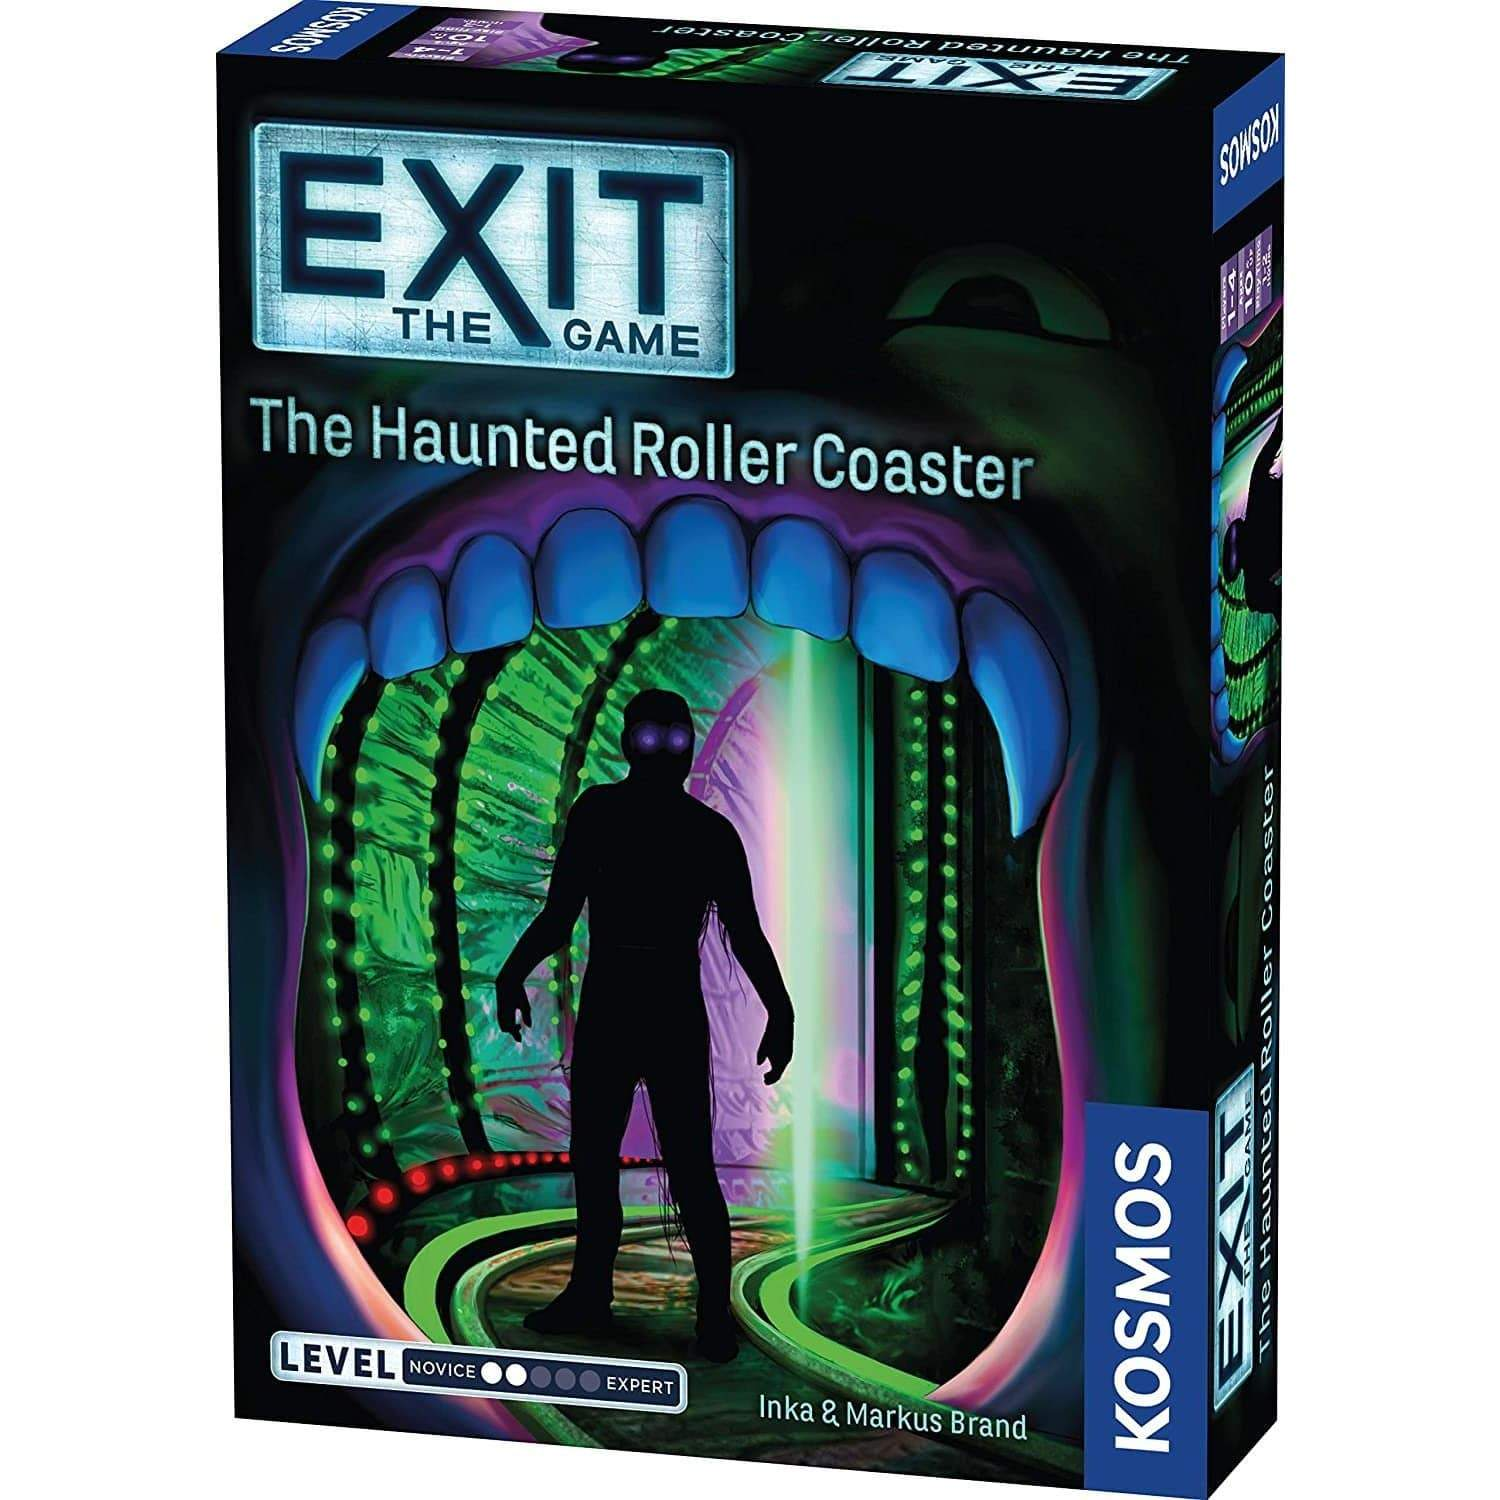 Exit: The Haunted Roller Coaster Thames & Kosmos Board Games